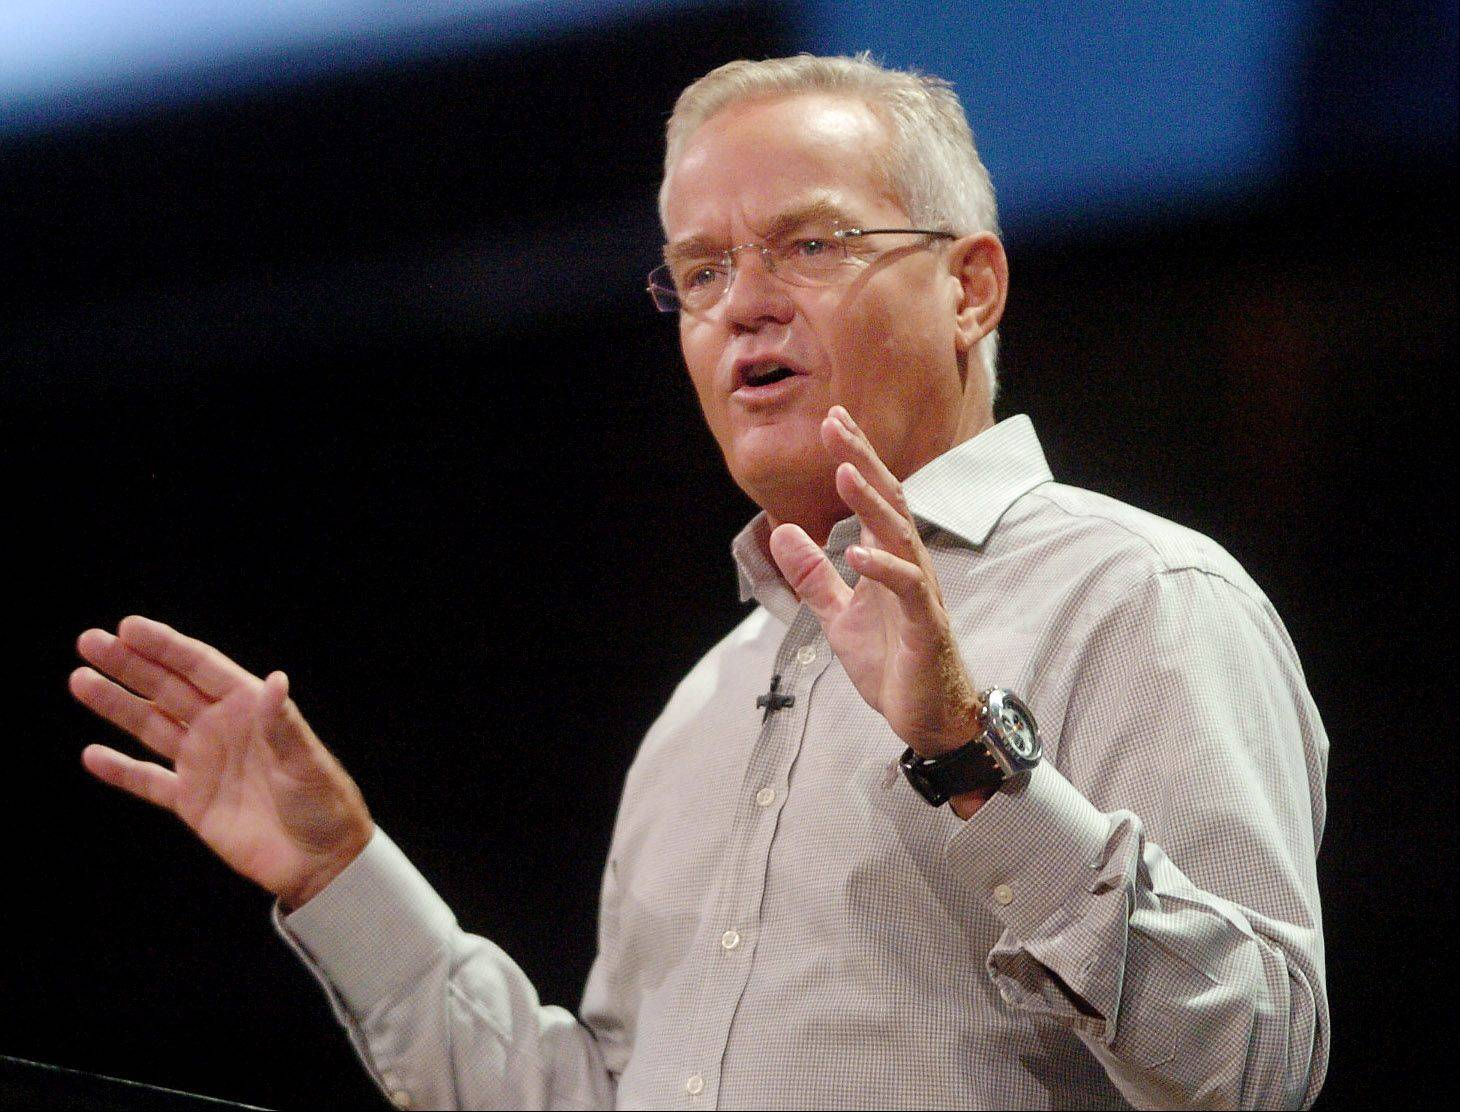 Bill Hybels, founder and senior pastor of Willow Creek Community Church, is part of an effort to persuade conservative Christians and lawmakers they should support overhauling U.S. immigration laws.